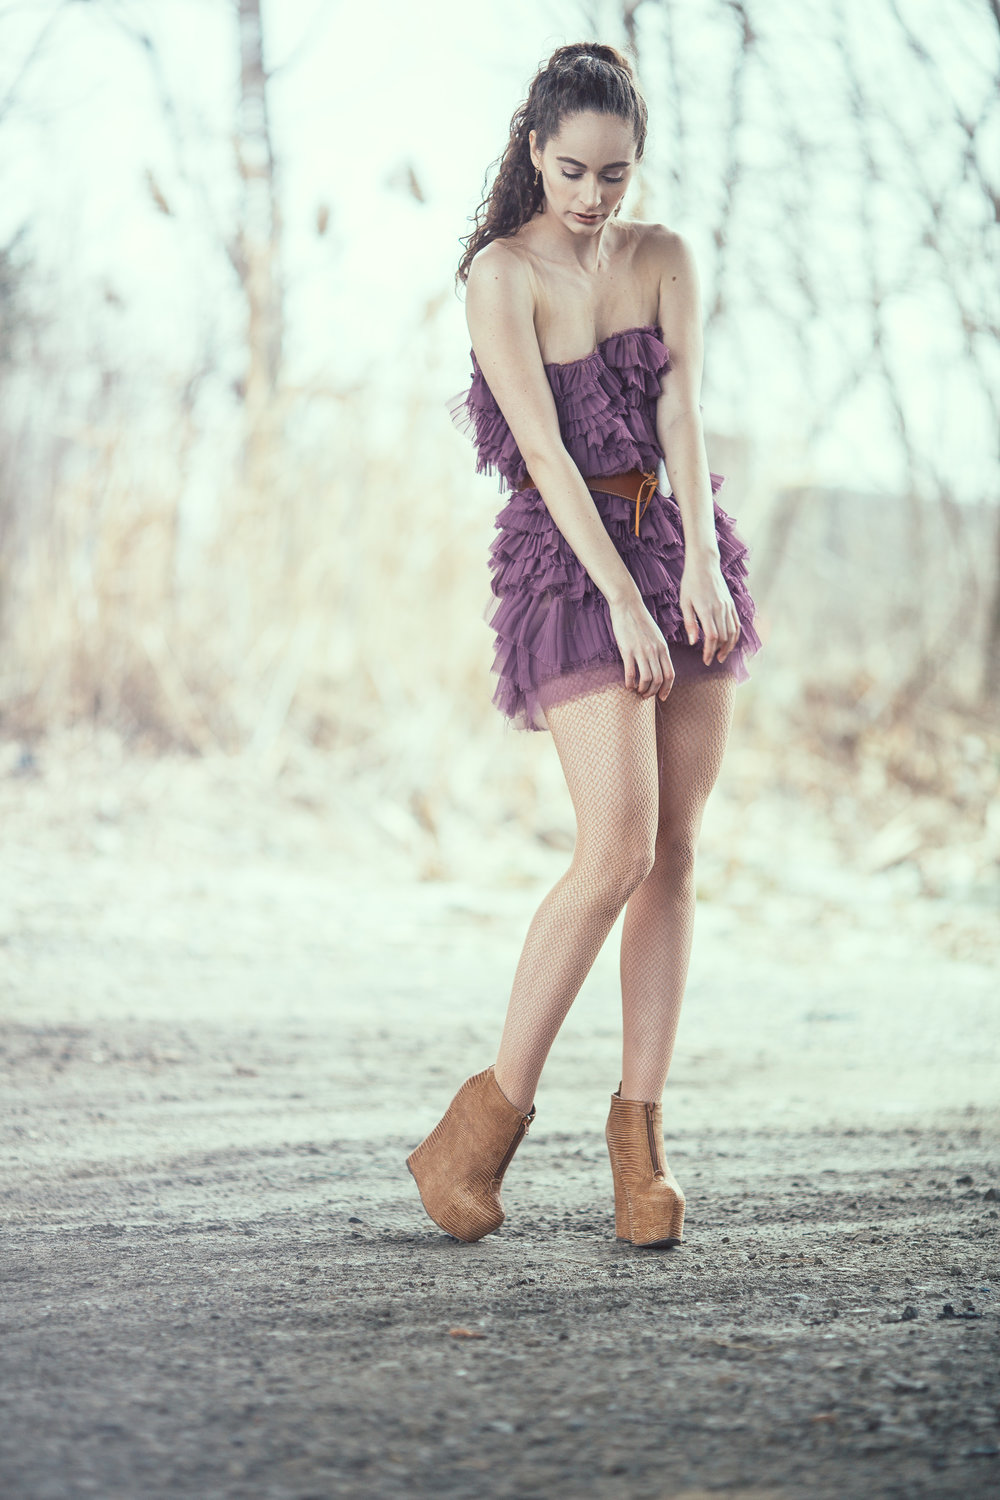 Pauline Fashion Editorial, tester shoot in purple dress  Detroit Photography, Fashion, Editorial